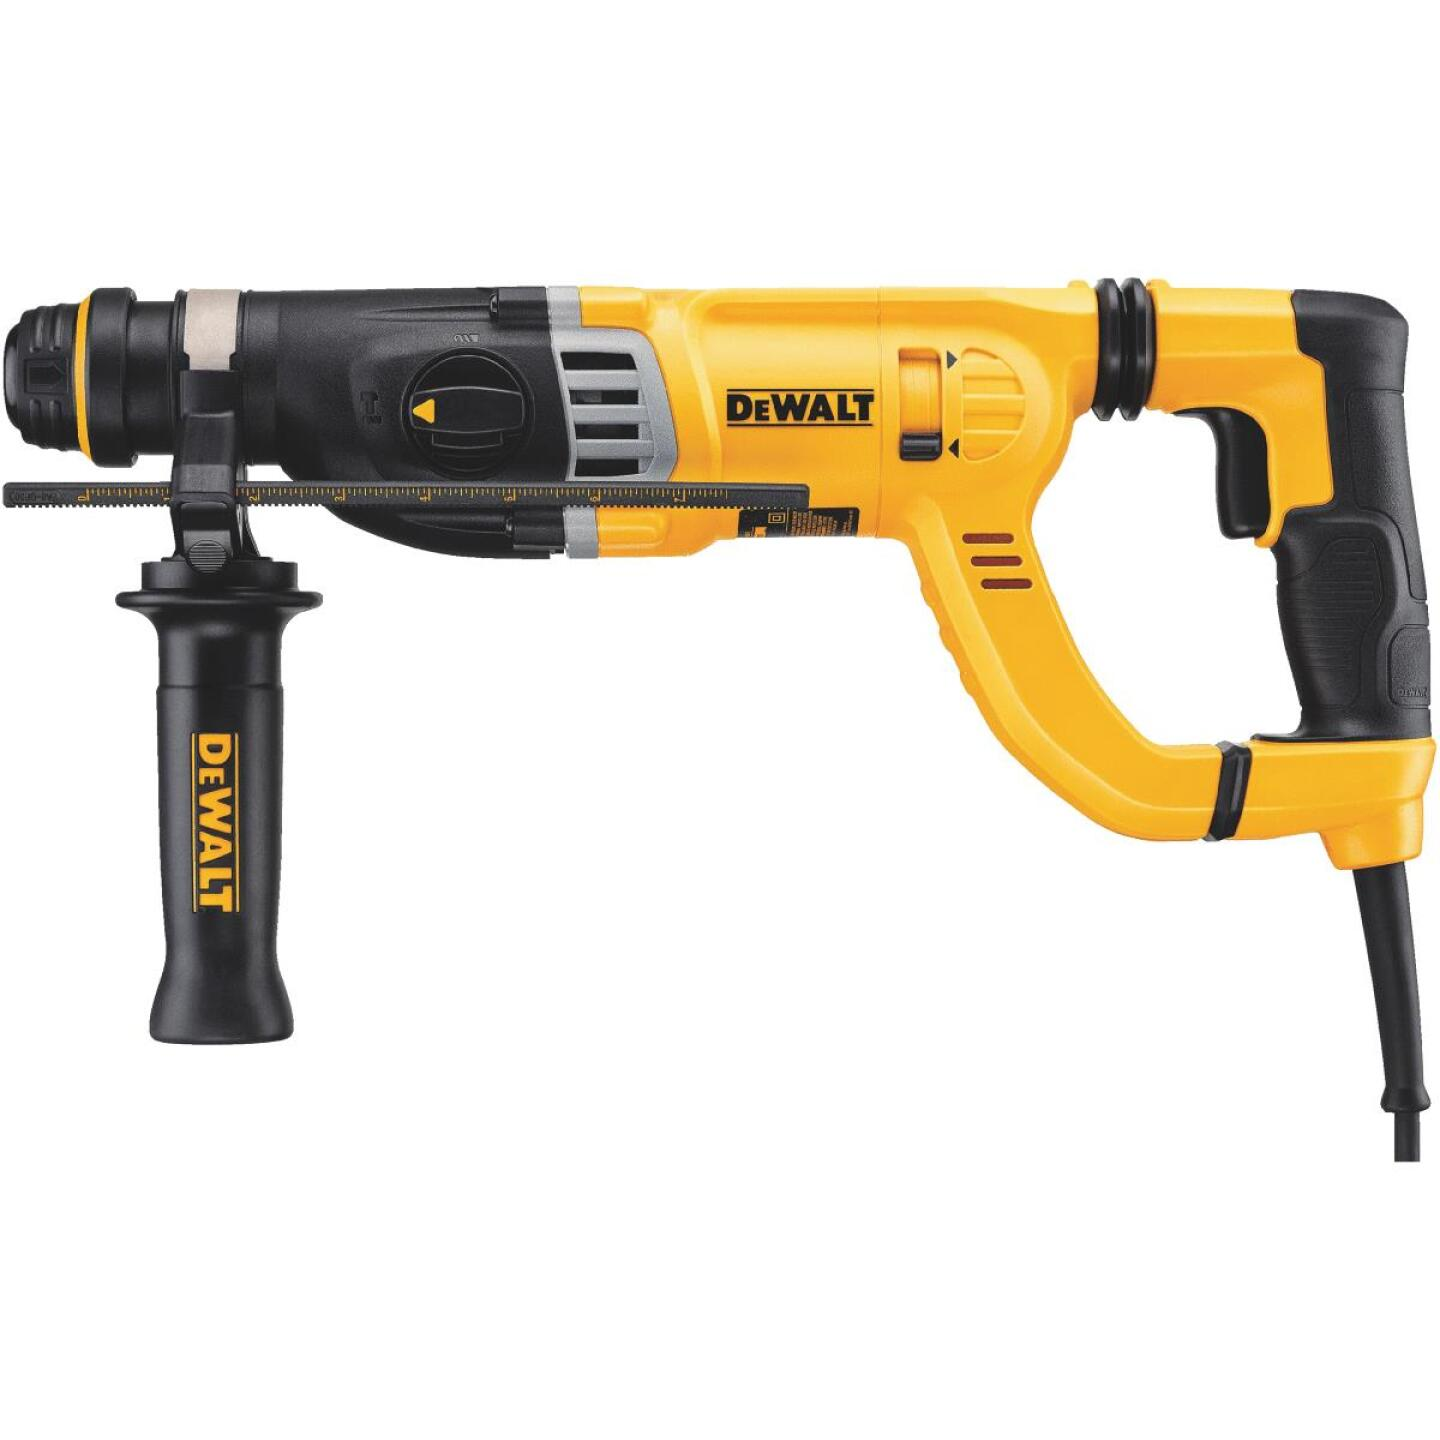 DeWalt 1-1/8 In. SDS-Plus 8.5-Amp D-Handle Electric Rotary Hammer Drill Image 1